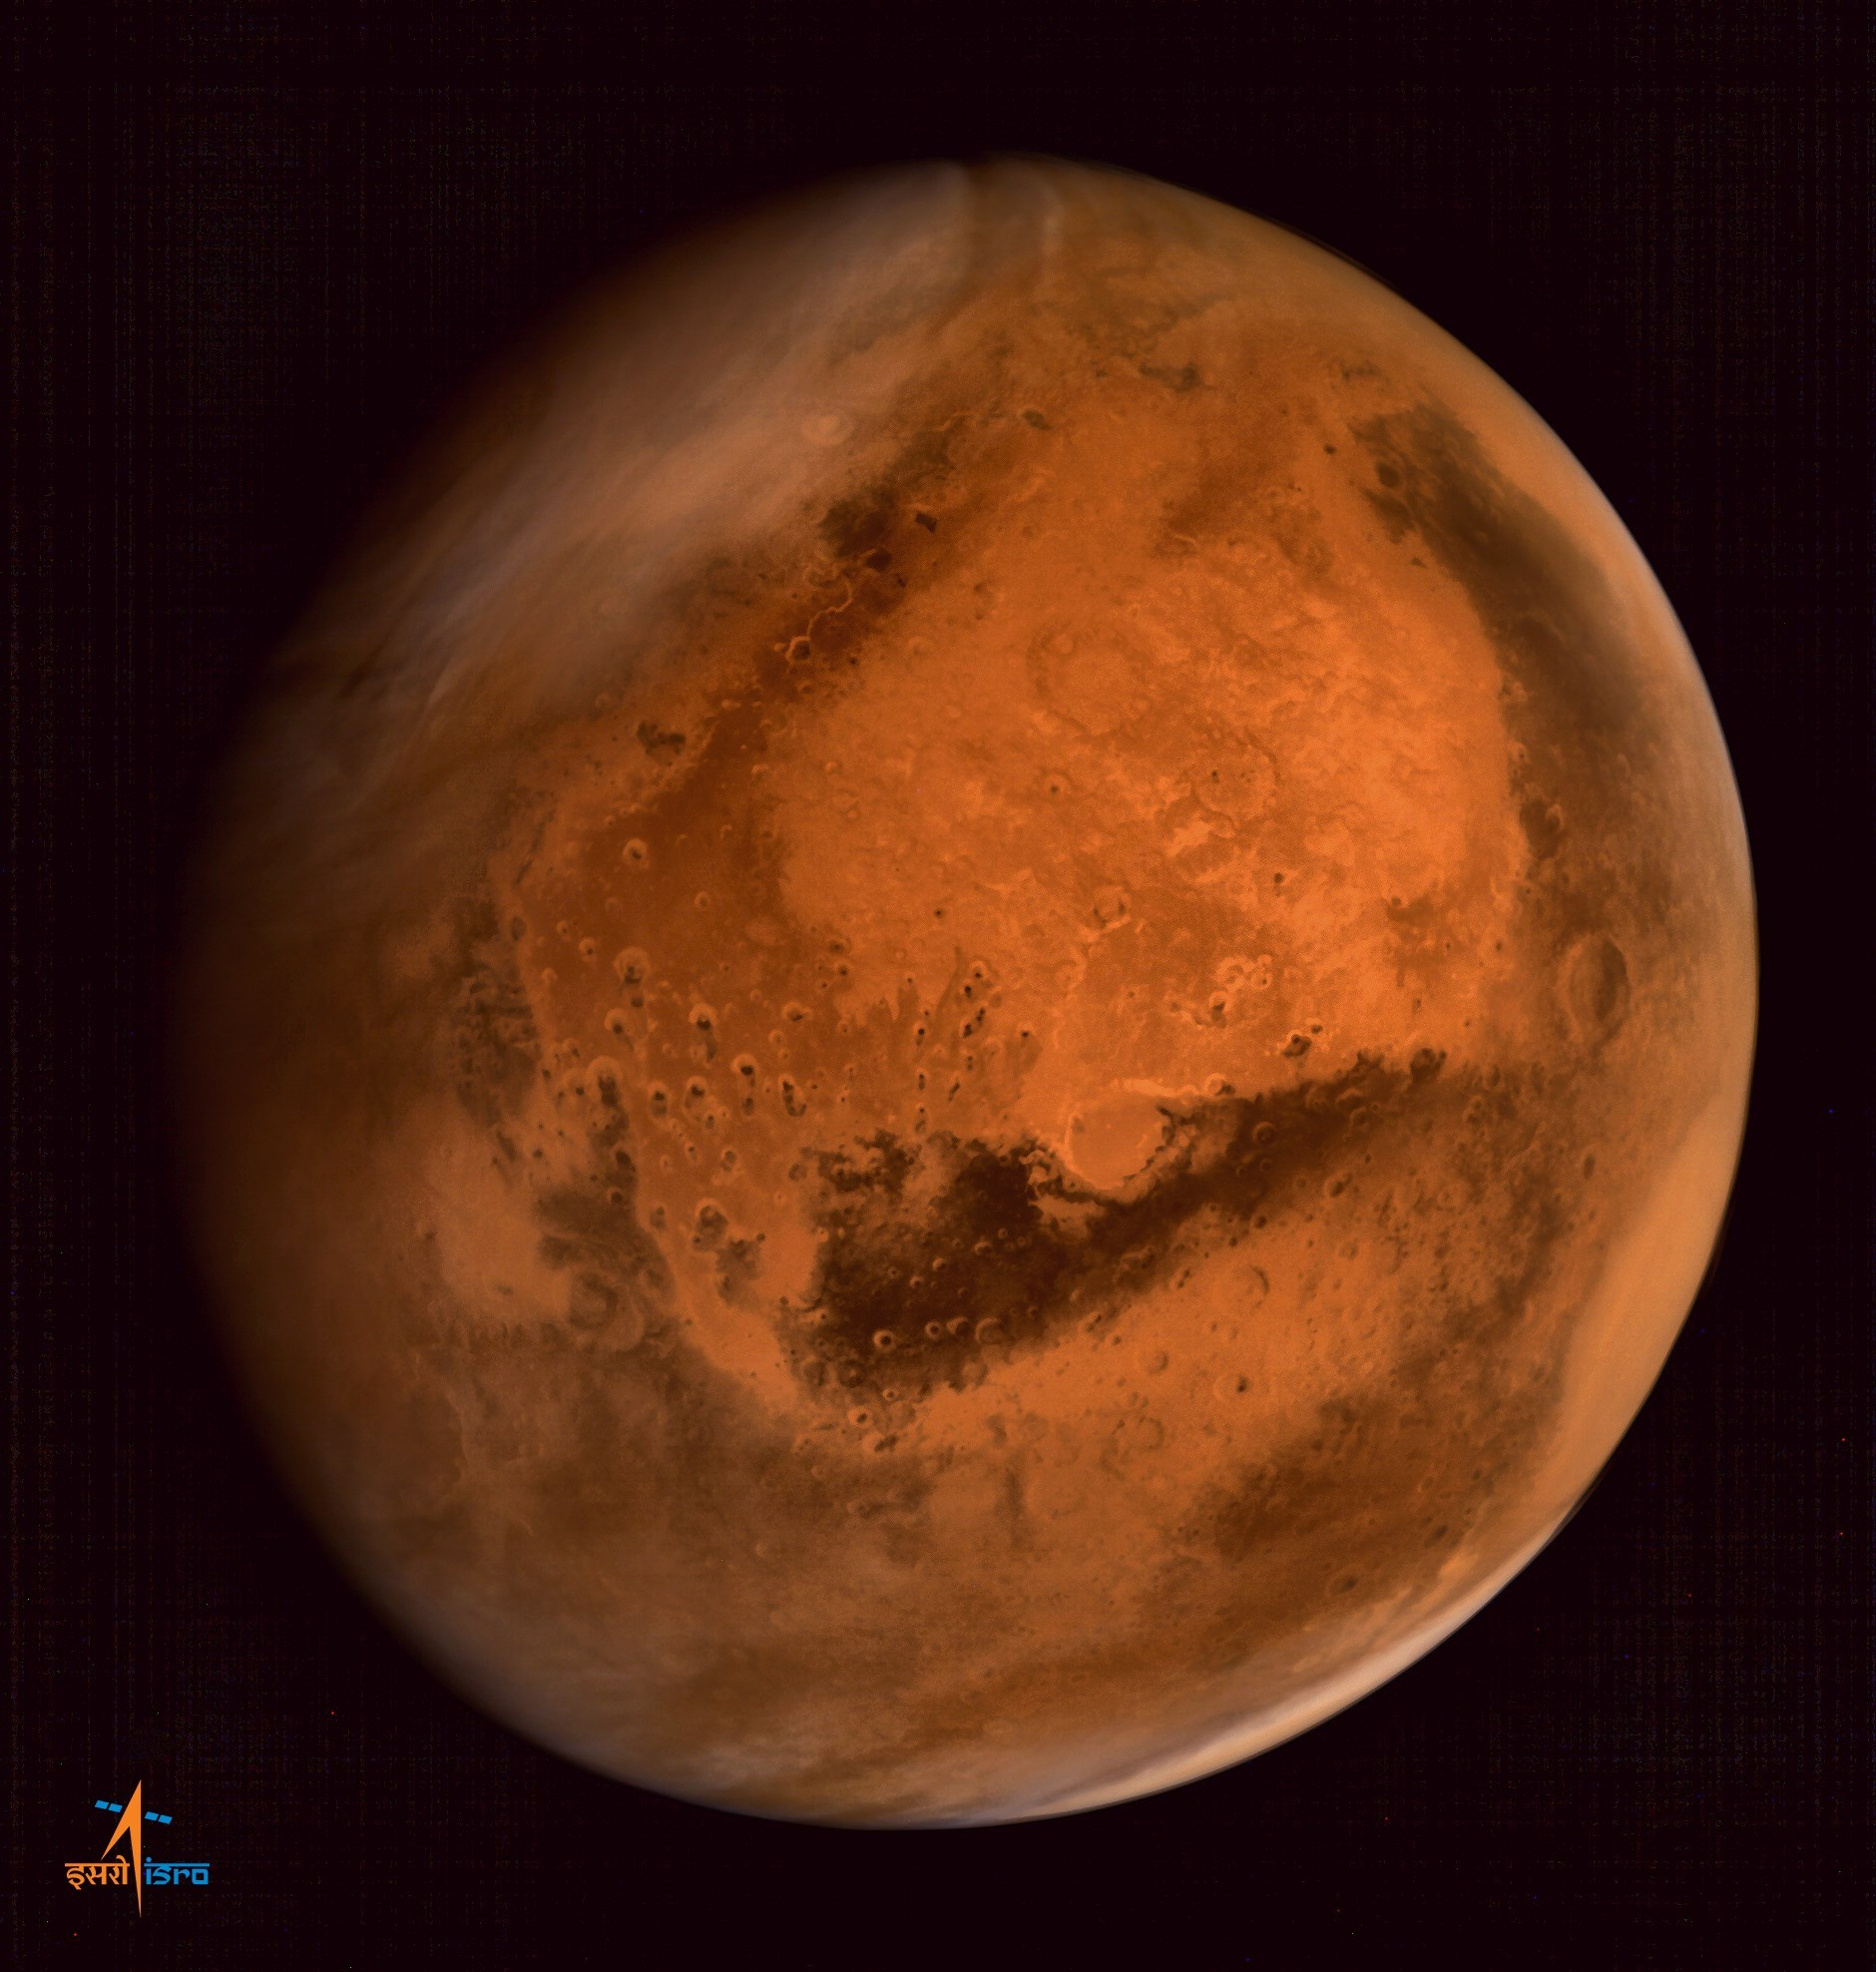 First global view of Mars